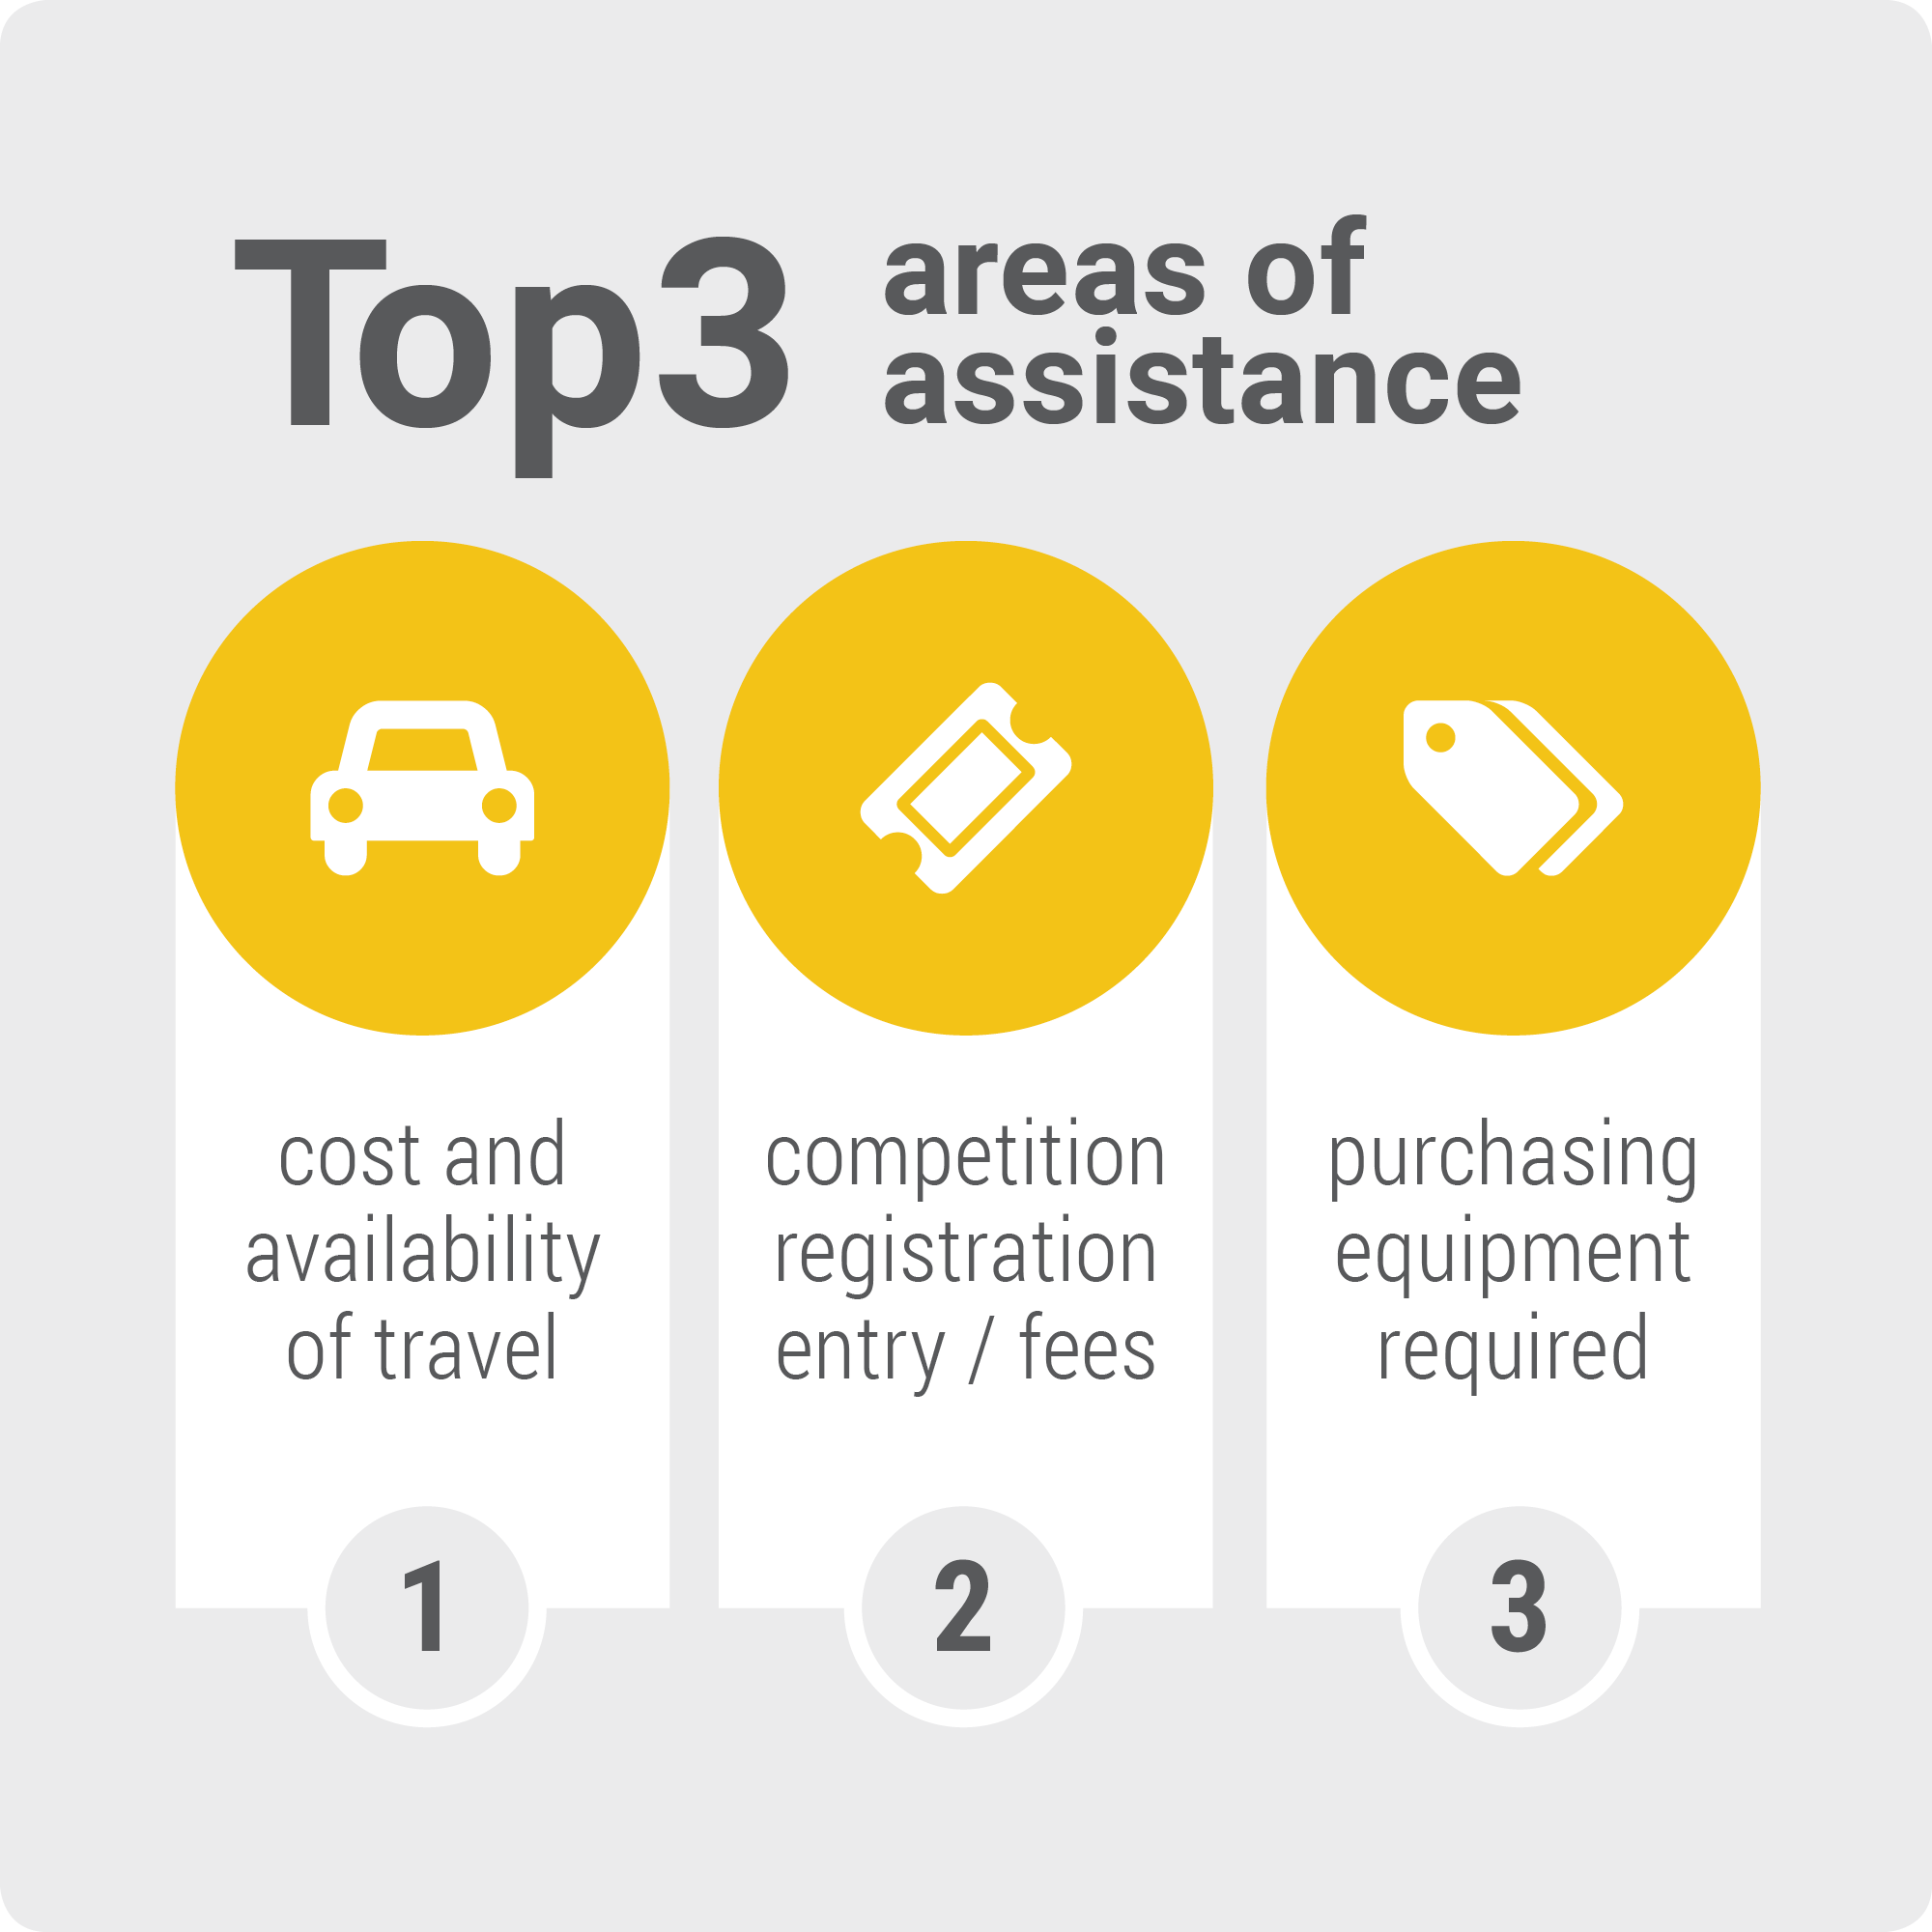 Top 3 areas of assistance